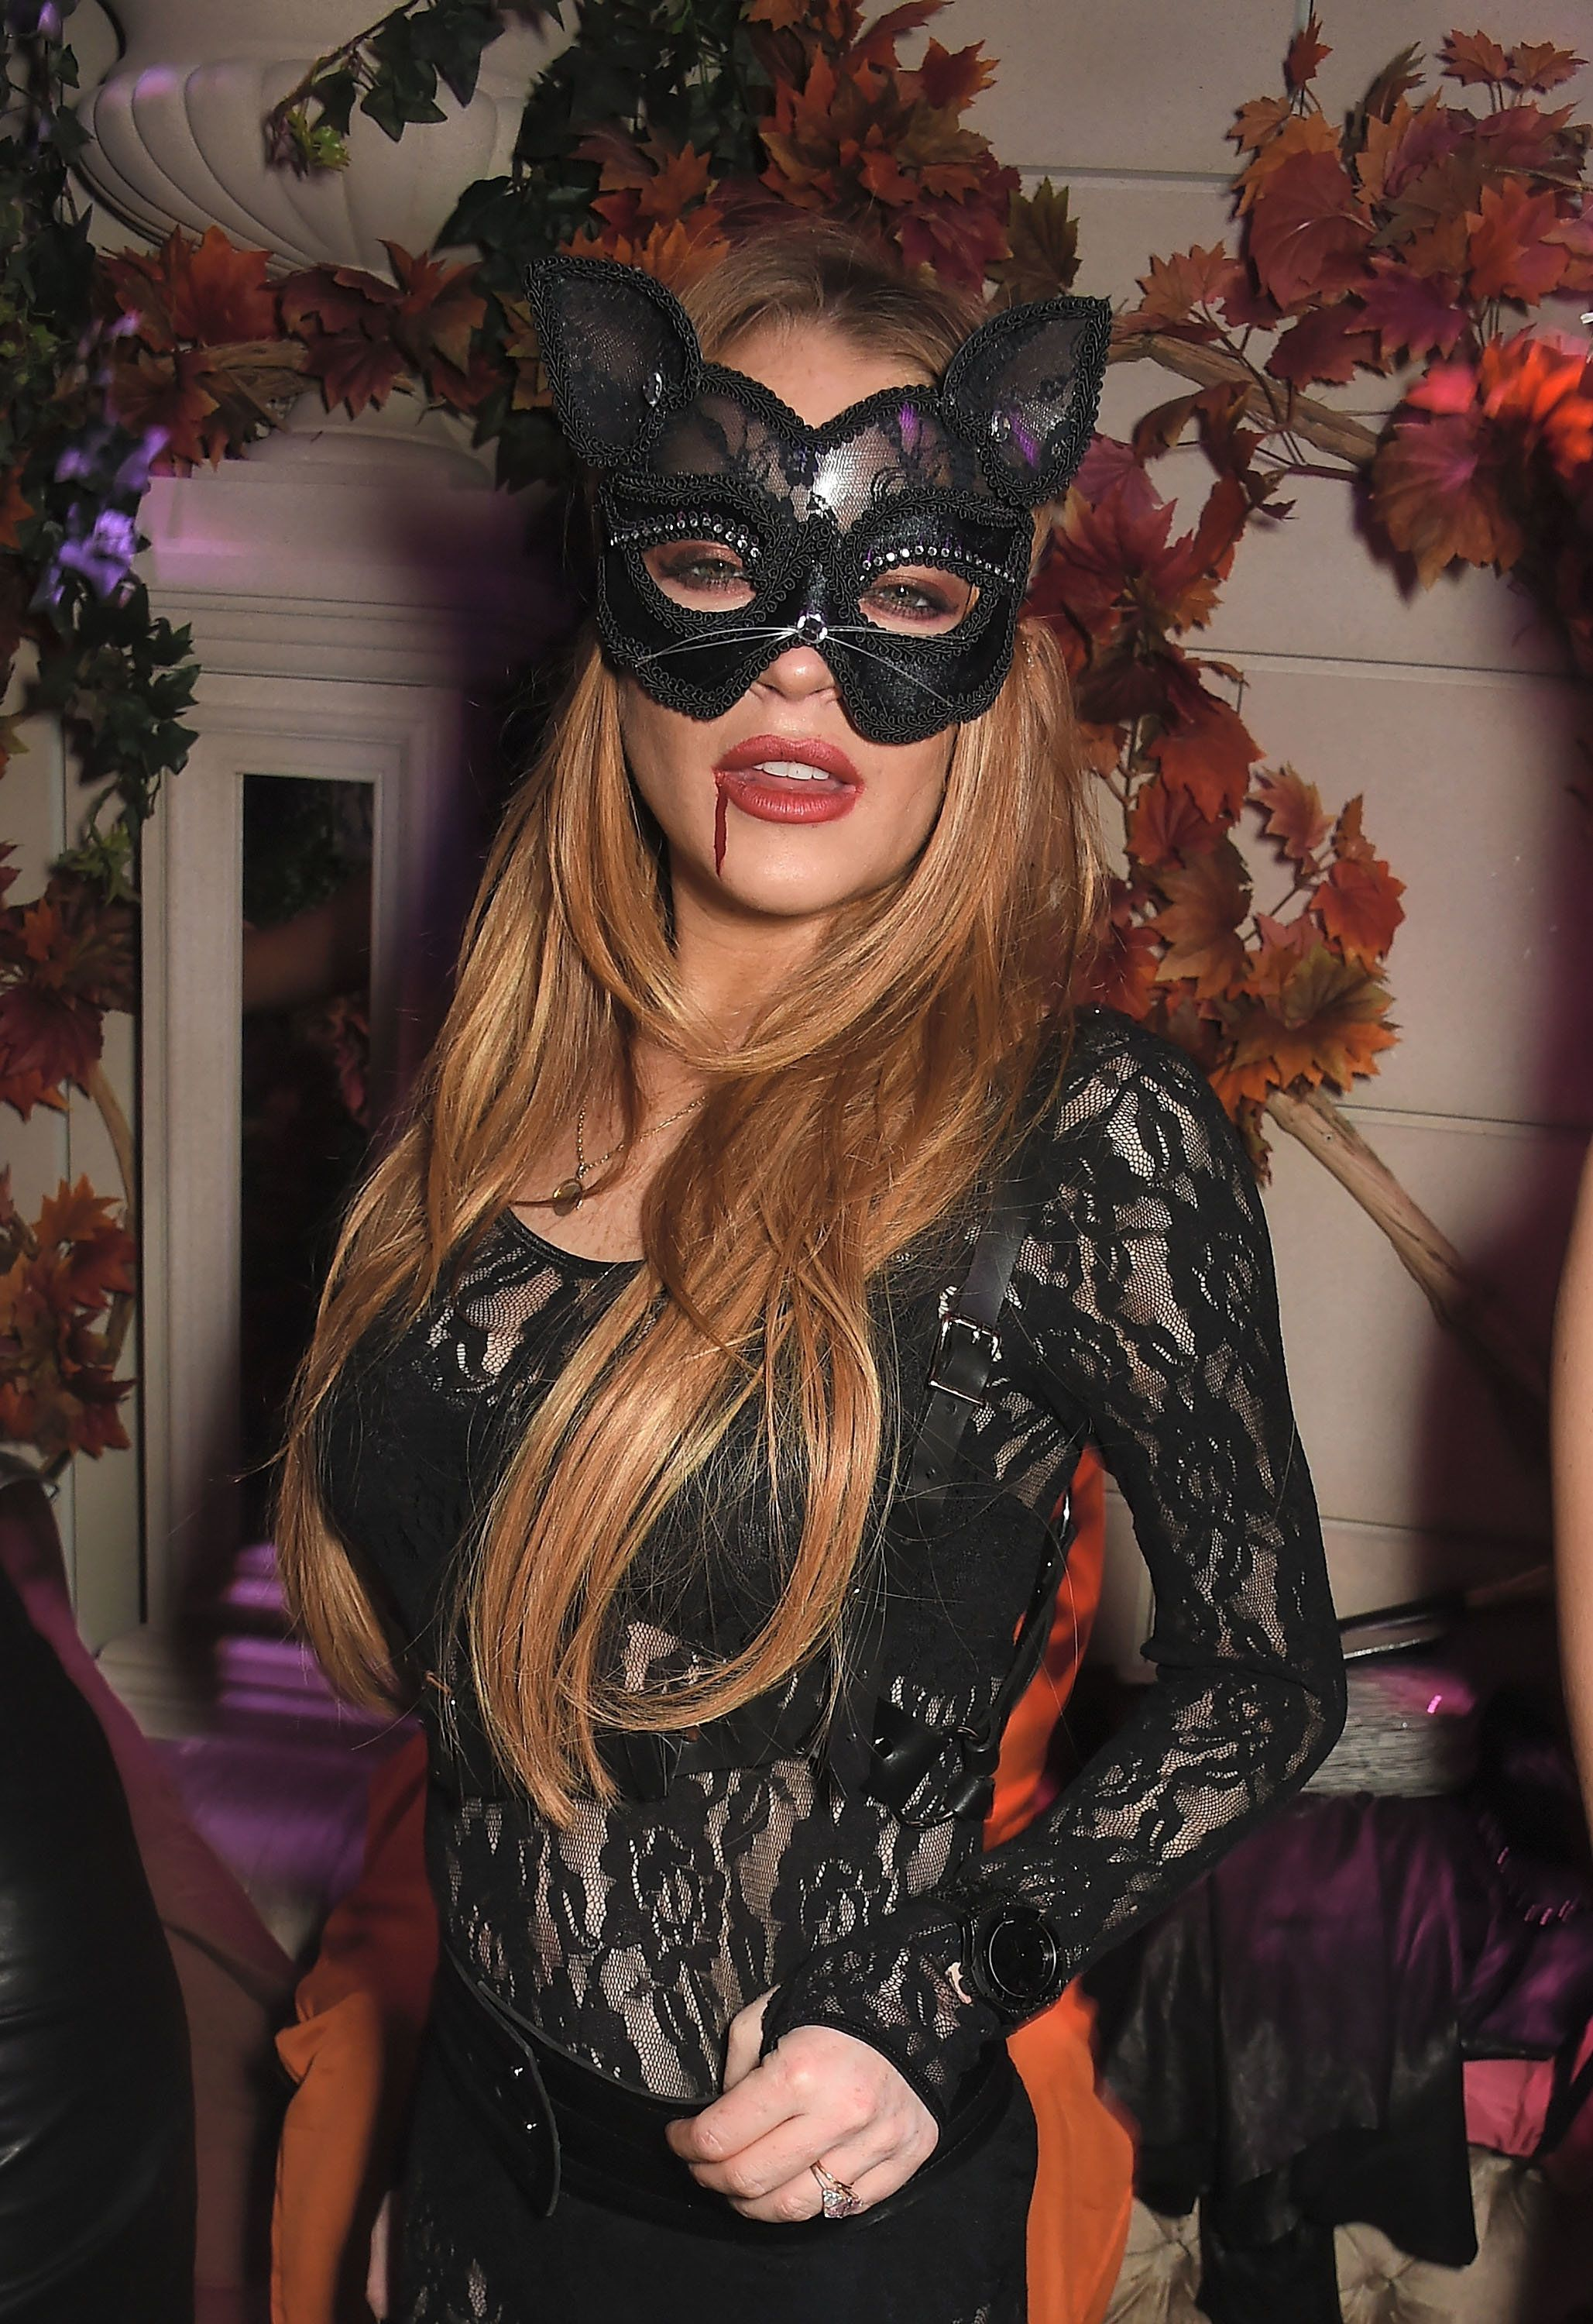 LONDON, ENGLAND - OCTOBER 28:  Lindsay Lohan attends as The Cuckoo Club and Fran Cutler present The Asylum at The Cuckoo Club supported by Grey Goose on October 28, 2015 in London, England.  (Photo by David M. Benett/Dave Benett/Getty Images)